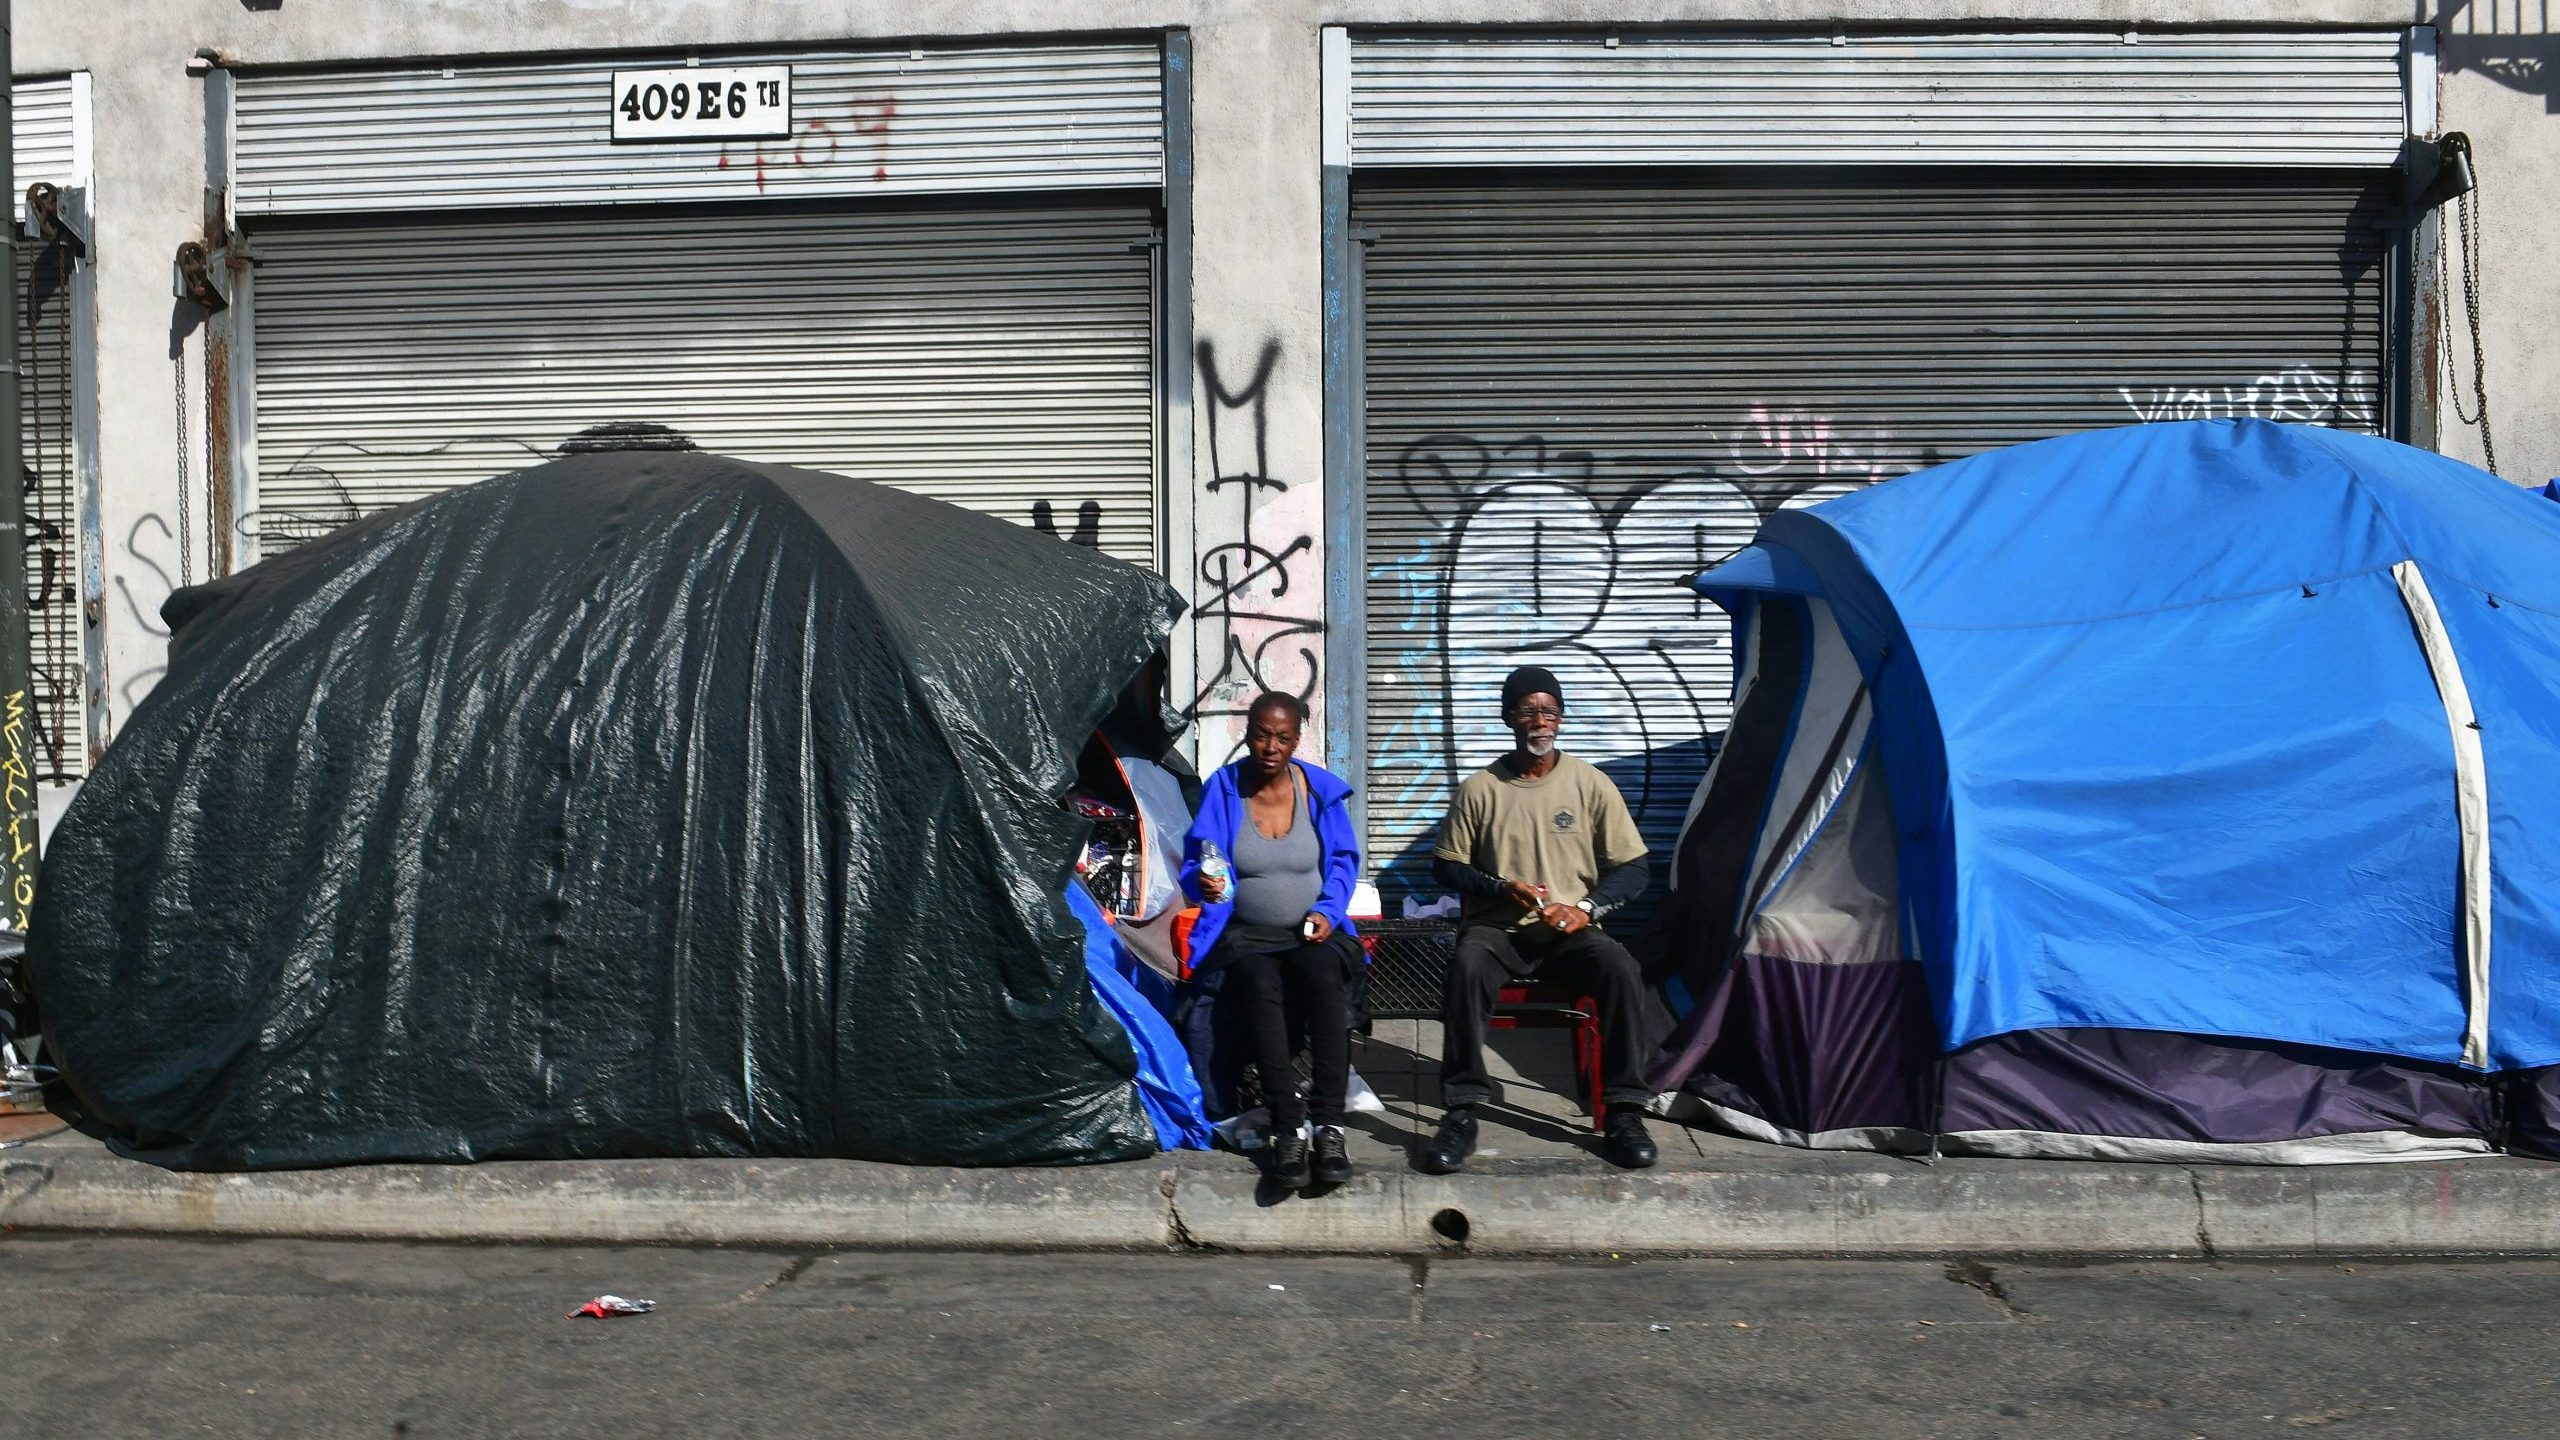 Tents for the homeless line a sidewalk in Los Angeles on Dec. 17, 2019. (Credit: Frederic J. Brown/AFP via Getty Images)